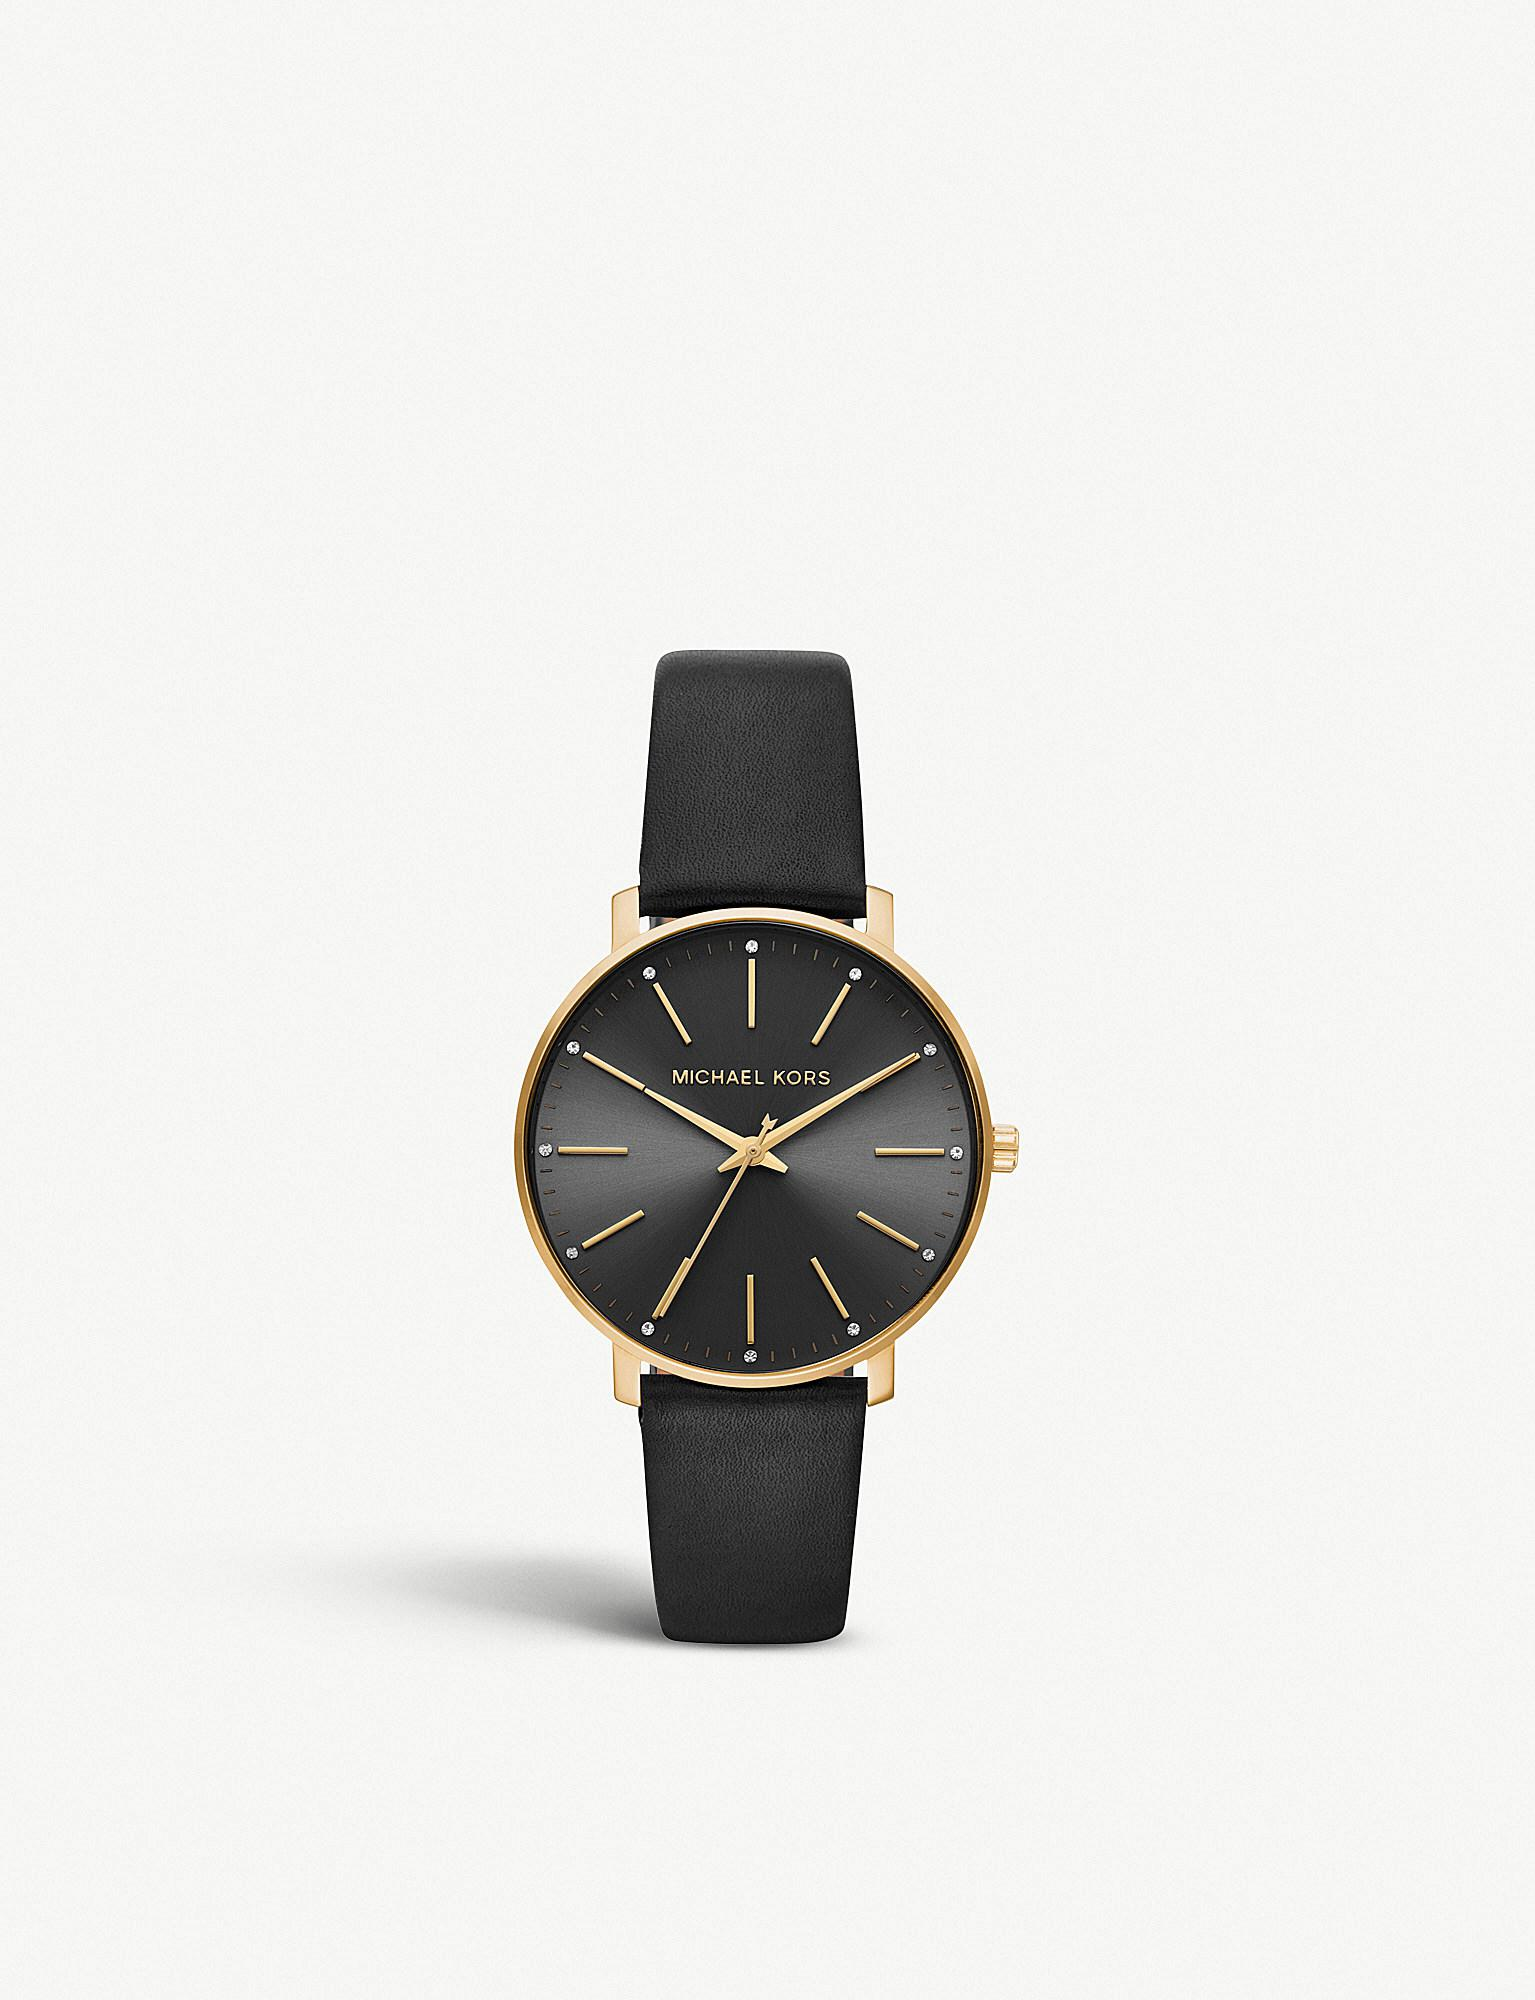 a46d7738ceb3 Michael Kors - Mk2747 Pyper Yellow-gold Stainless Steel And Leather Watch -  Lyst. View fullscreen